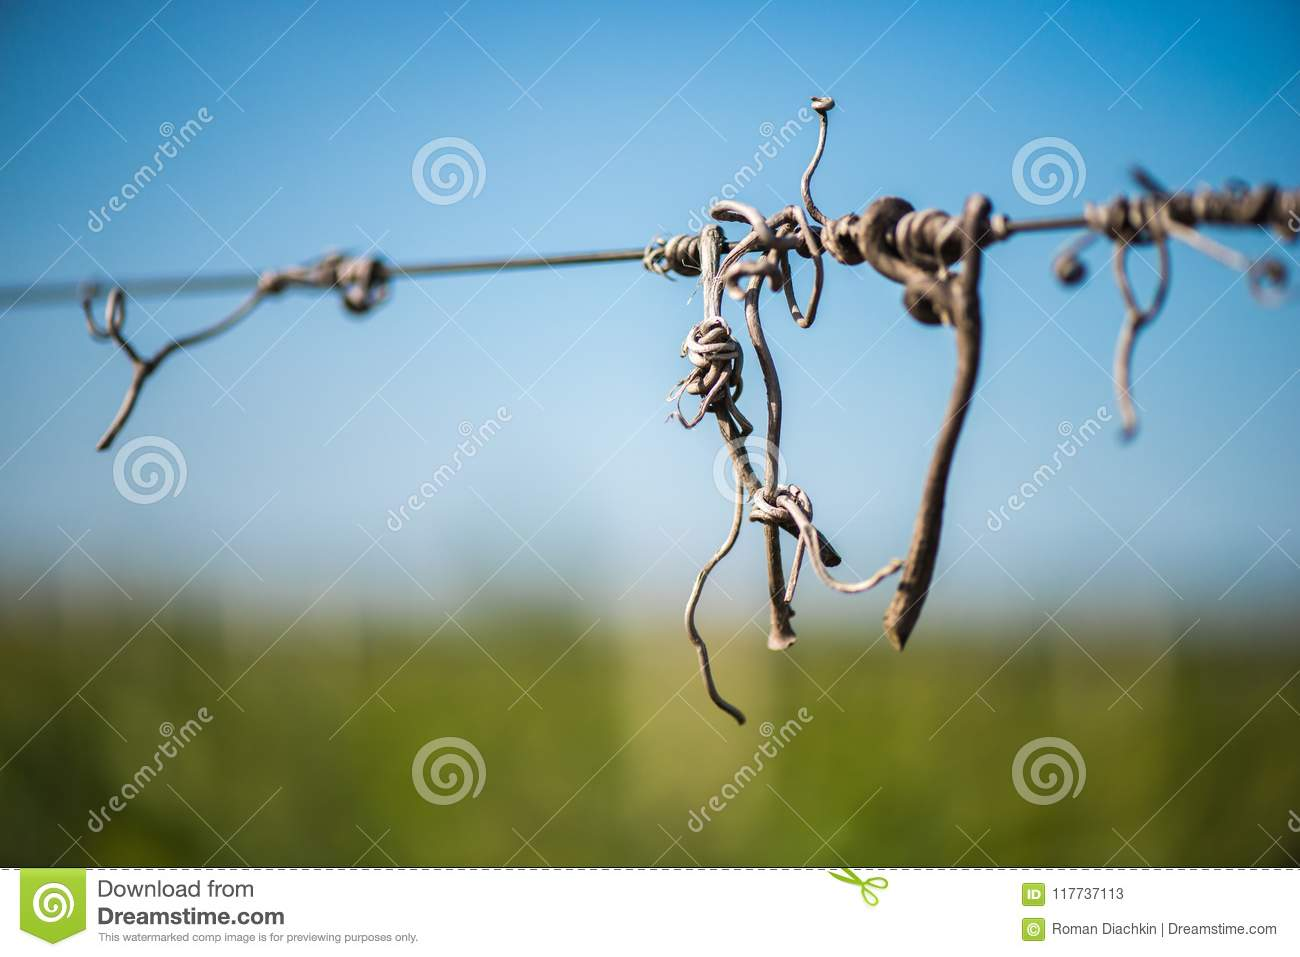 Cut Vines Crook On The Guide Wire In The Vineyard Stock Image ...